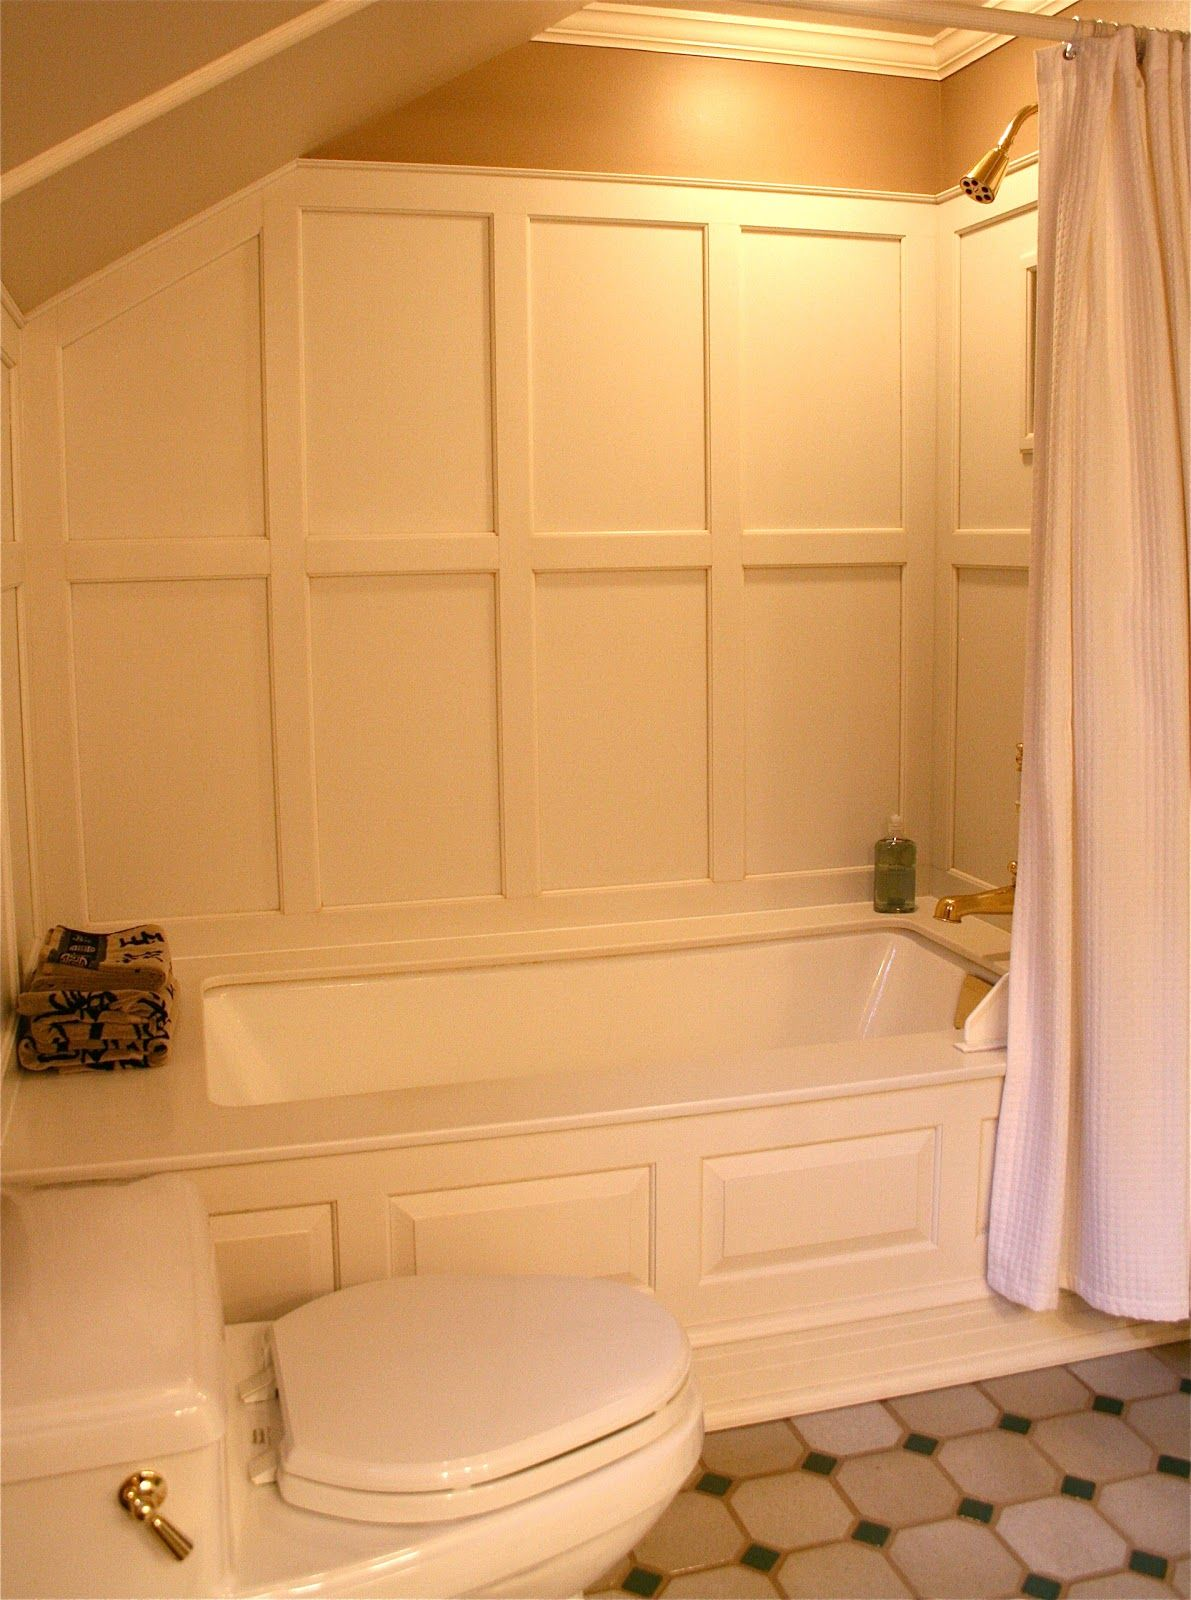 Have you ever seen the walls surrounding a bathtub paneled